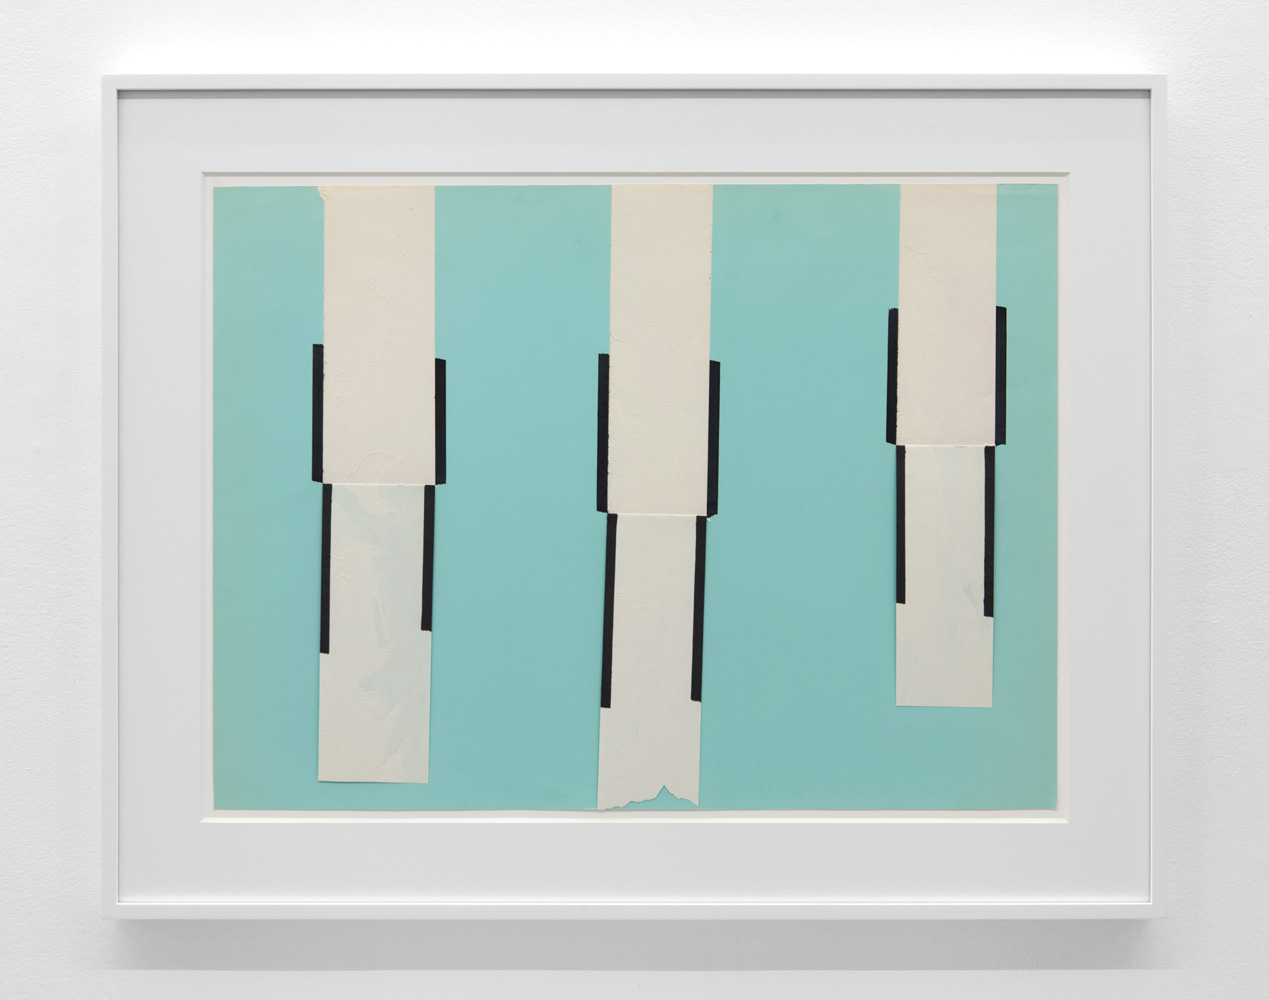 Dependent Space 275 , 1975 Magic marker on paper 20 3/4 x 28 inches 52.7 x 71.1 centimeters